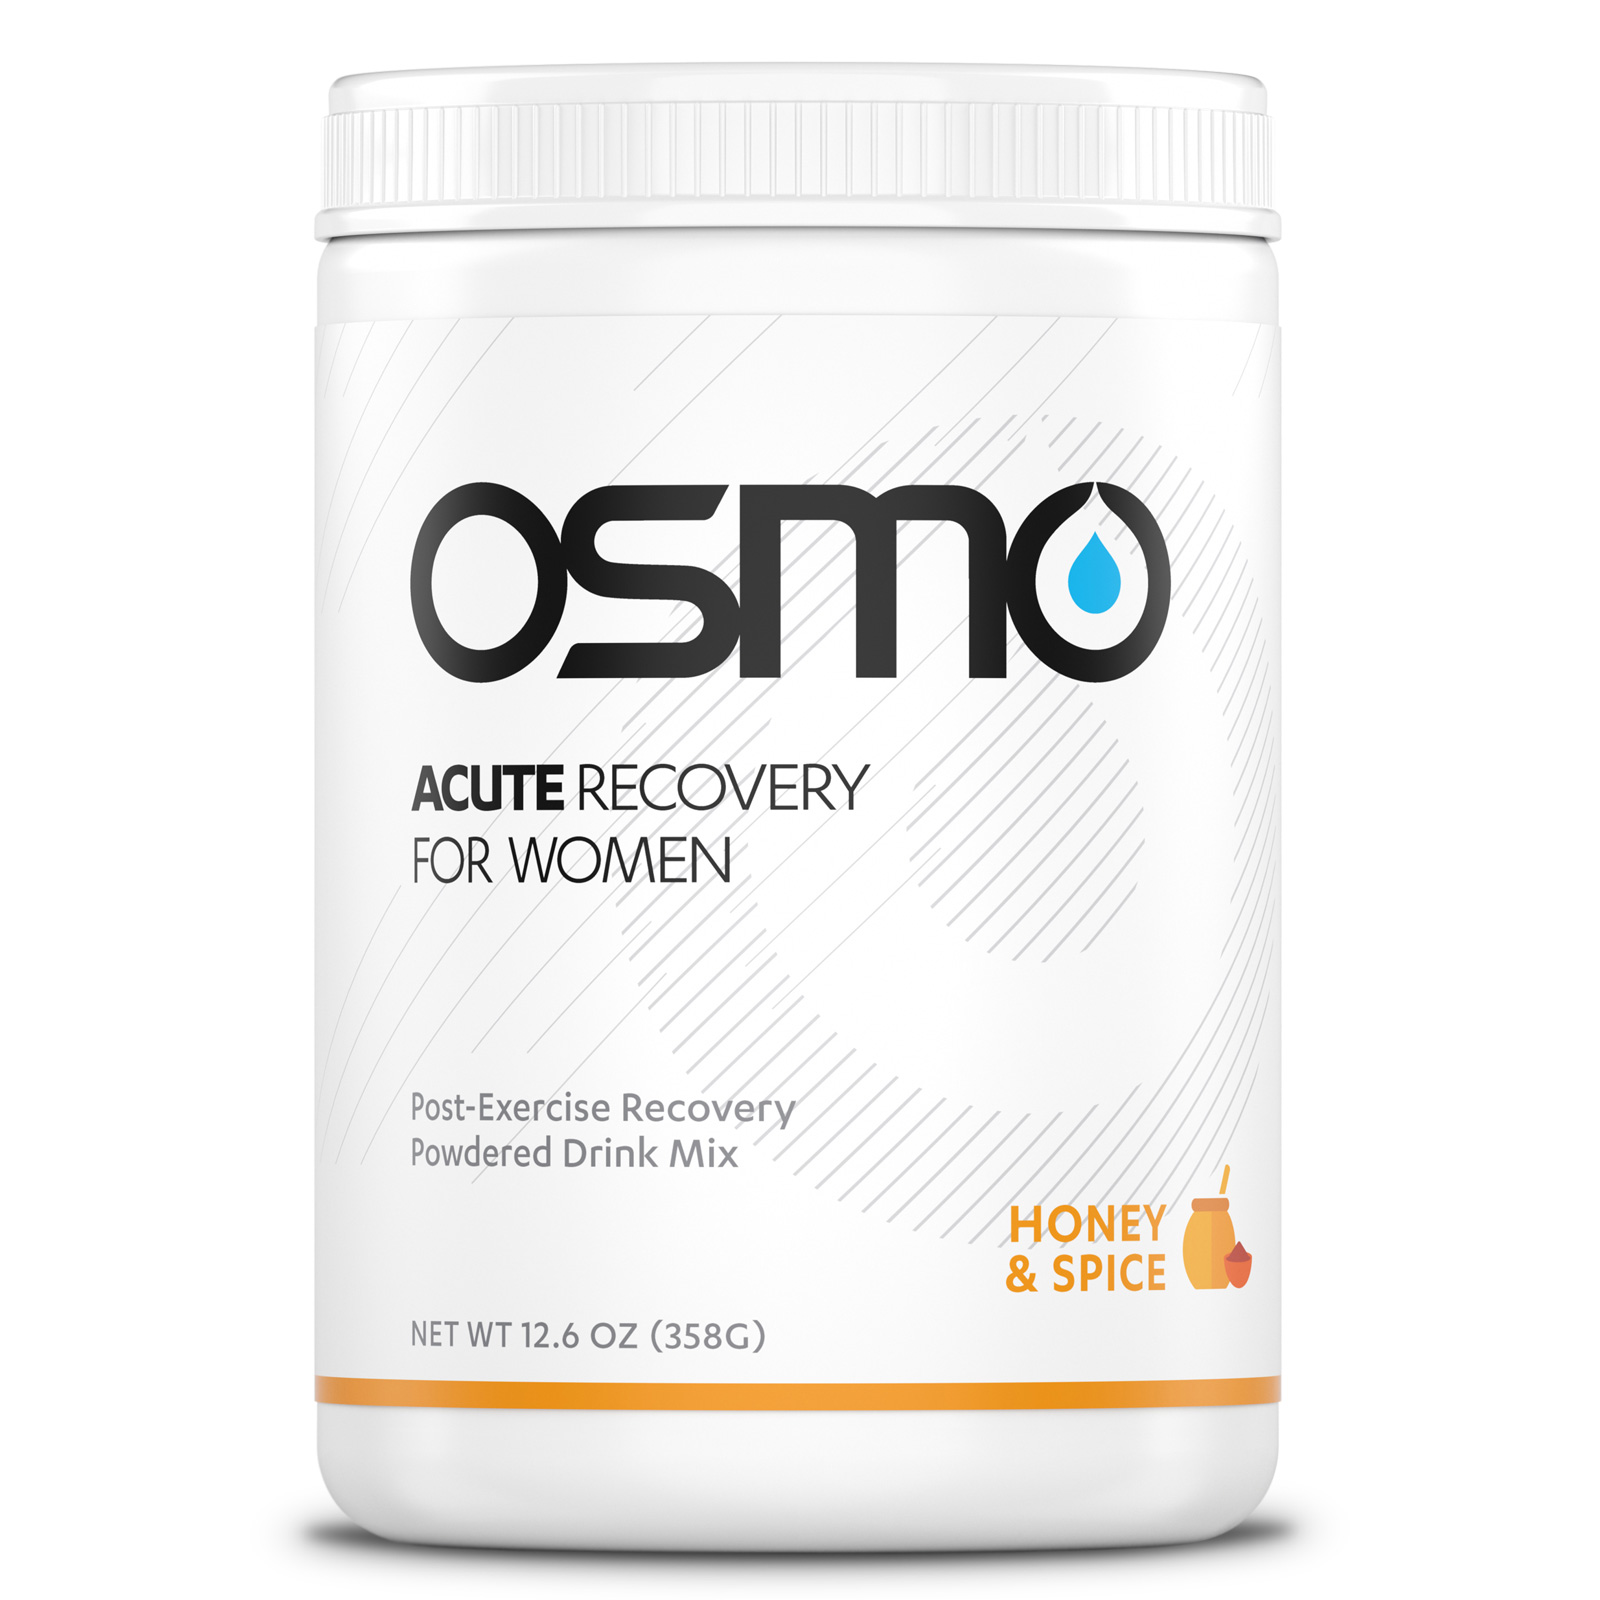 Osmo Acute Recovery For Women (358g) | item_misc